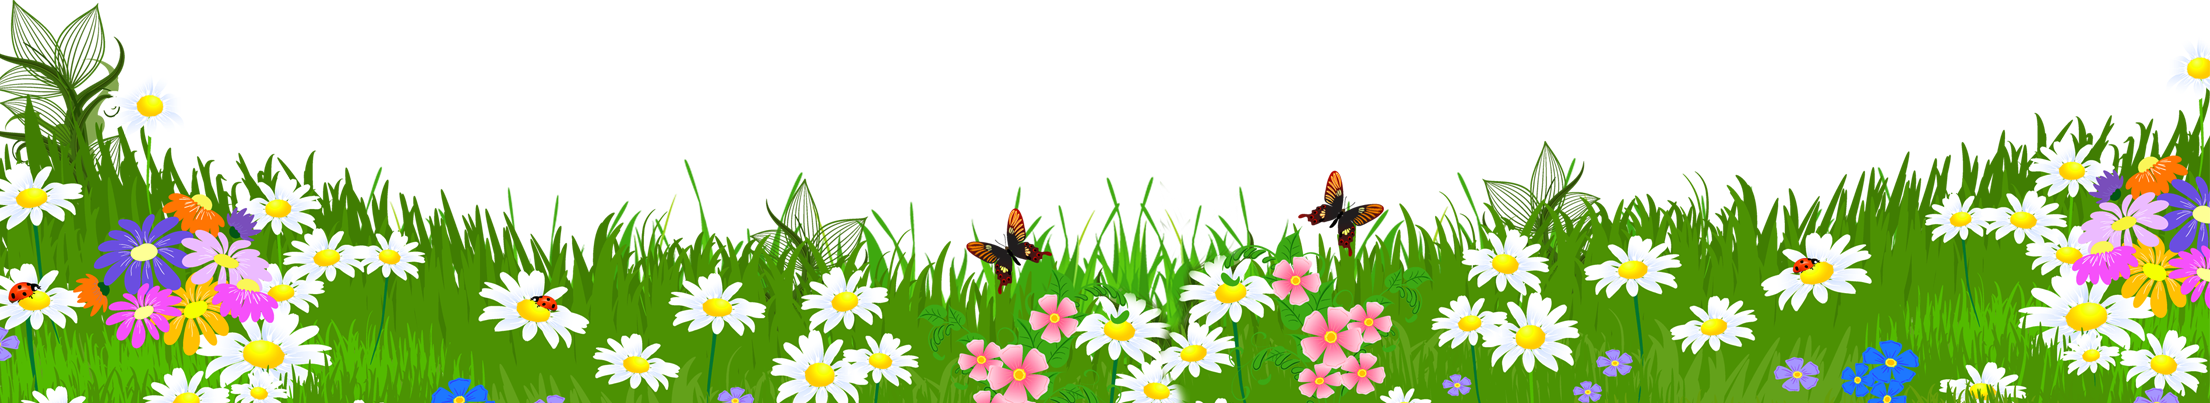 Grass ground with flowers. Flower meadow clipart